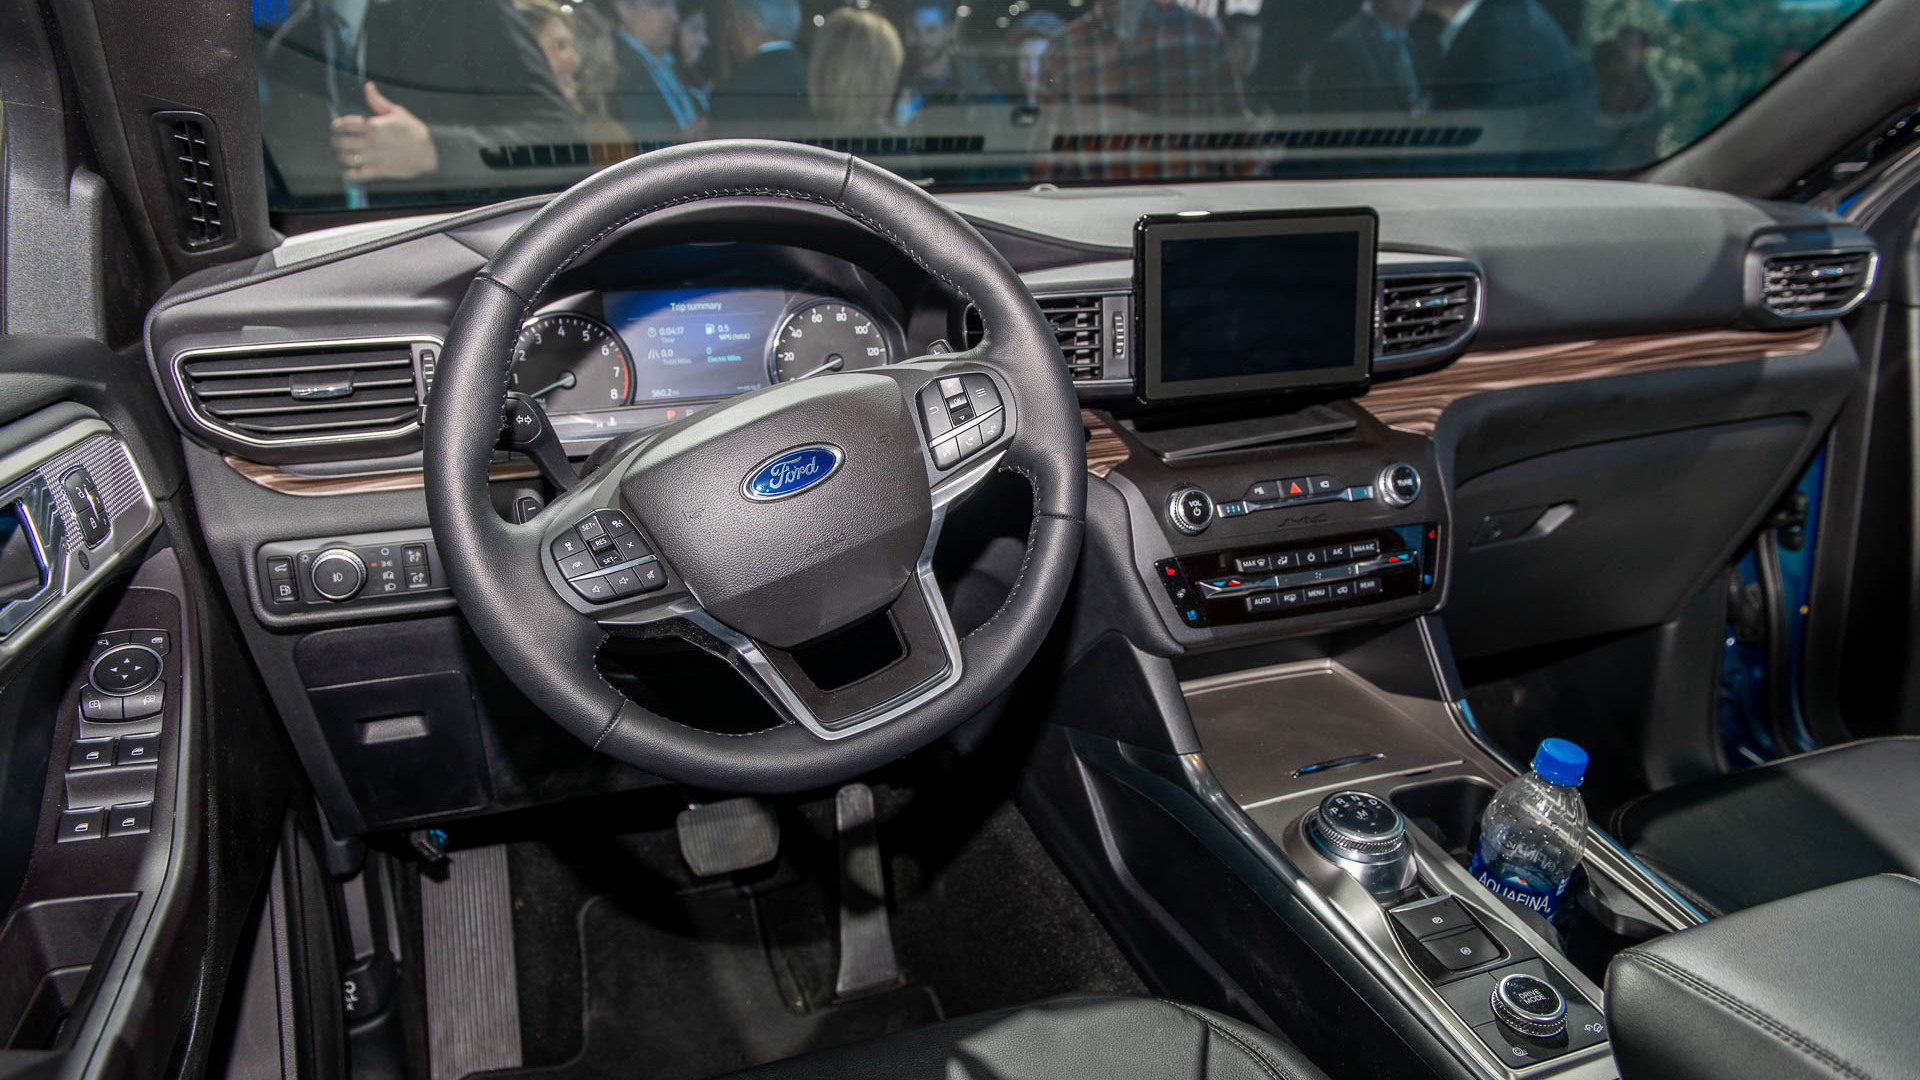 2020 Ford Explorer Hybrid Signals The Start Of A Big Electrified Push